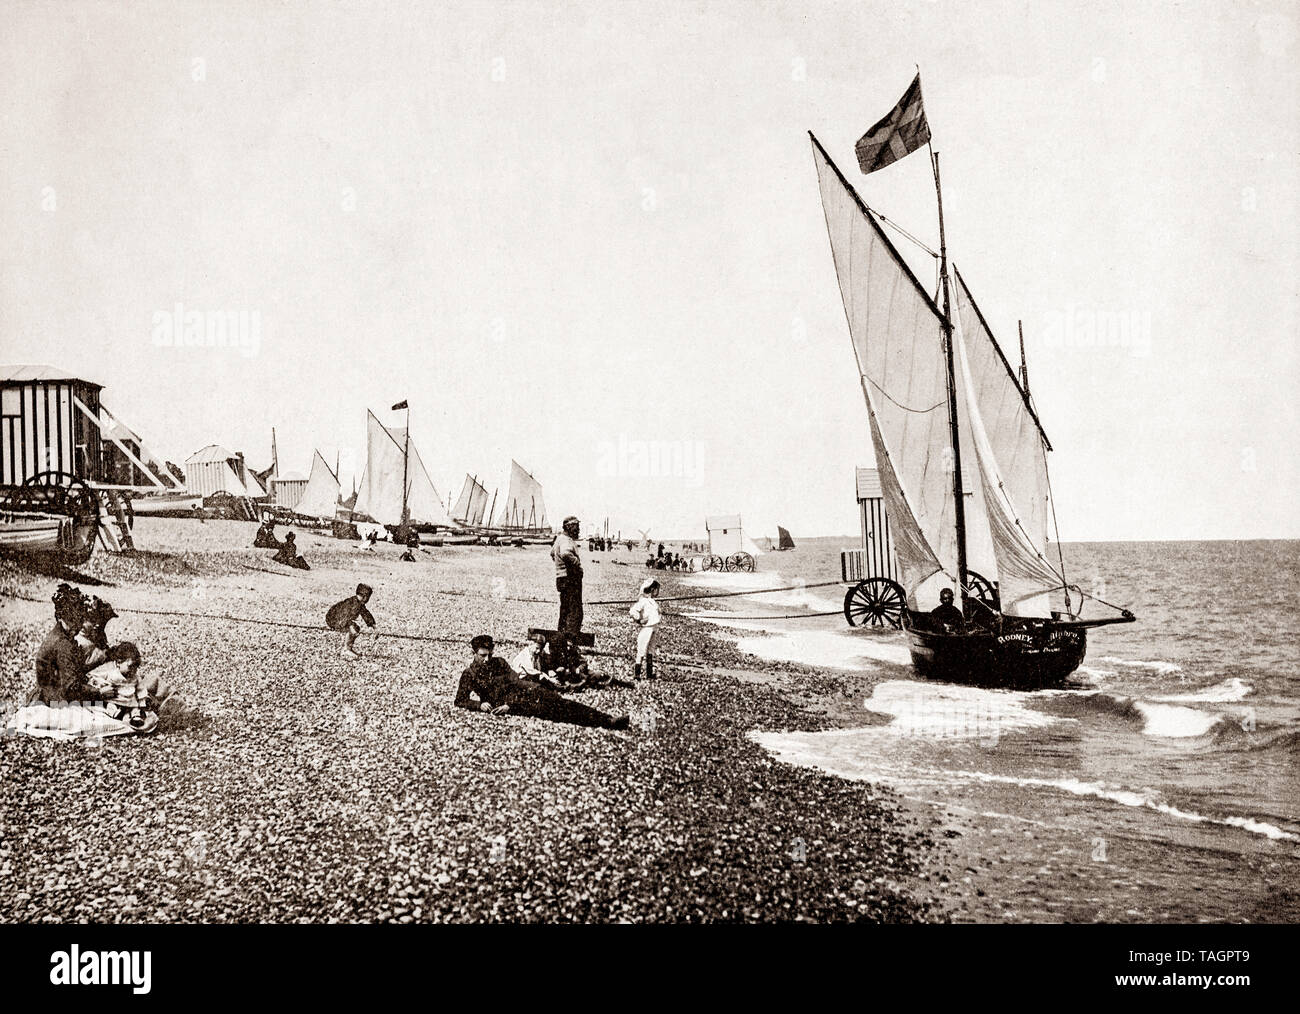 A late 19th Century view of  yachts from the beach at Aldeburgh, an English town on the North Sea coast in the county of Suffolk, to the north of the River Alde. Originally Aldeburgh was a leading Tudor port, and had a flourishing ship-building industry, but its importance as a port declined as the River Alde silted up and larger ships could no longer berth. It survived mainly on fishing until the 19th century, when it also became a seaside resort. - Stock Image